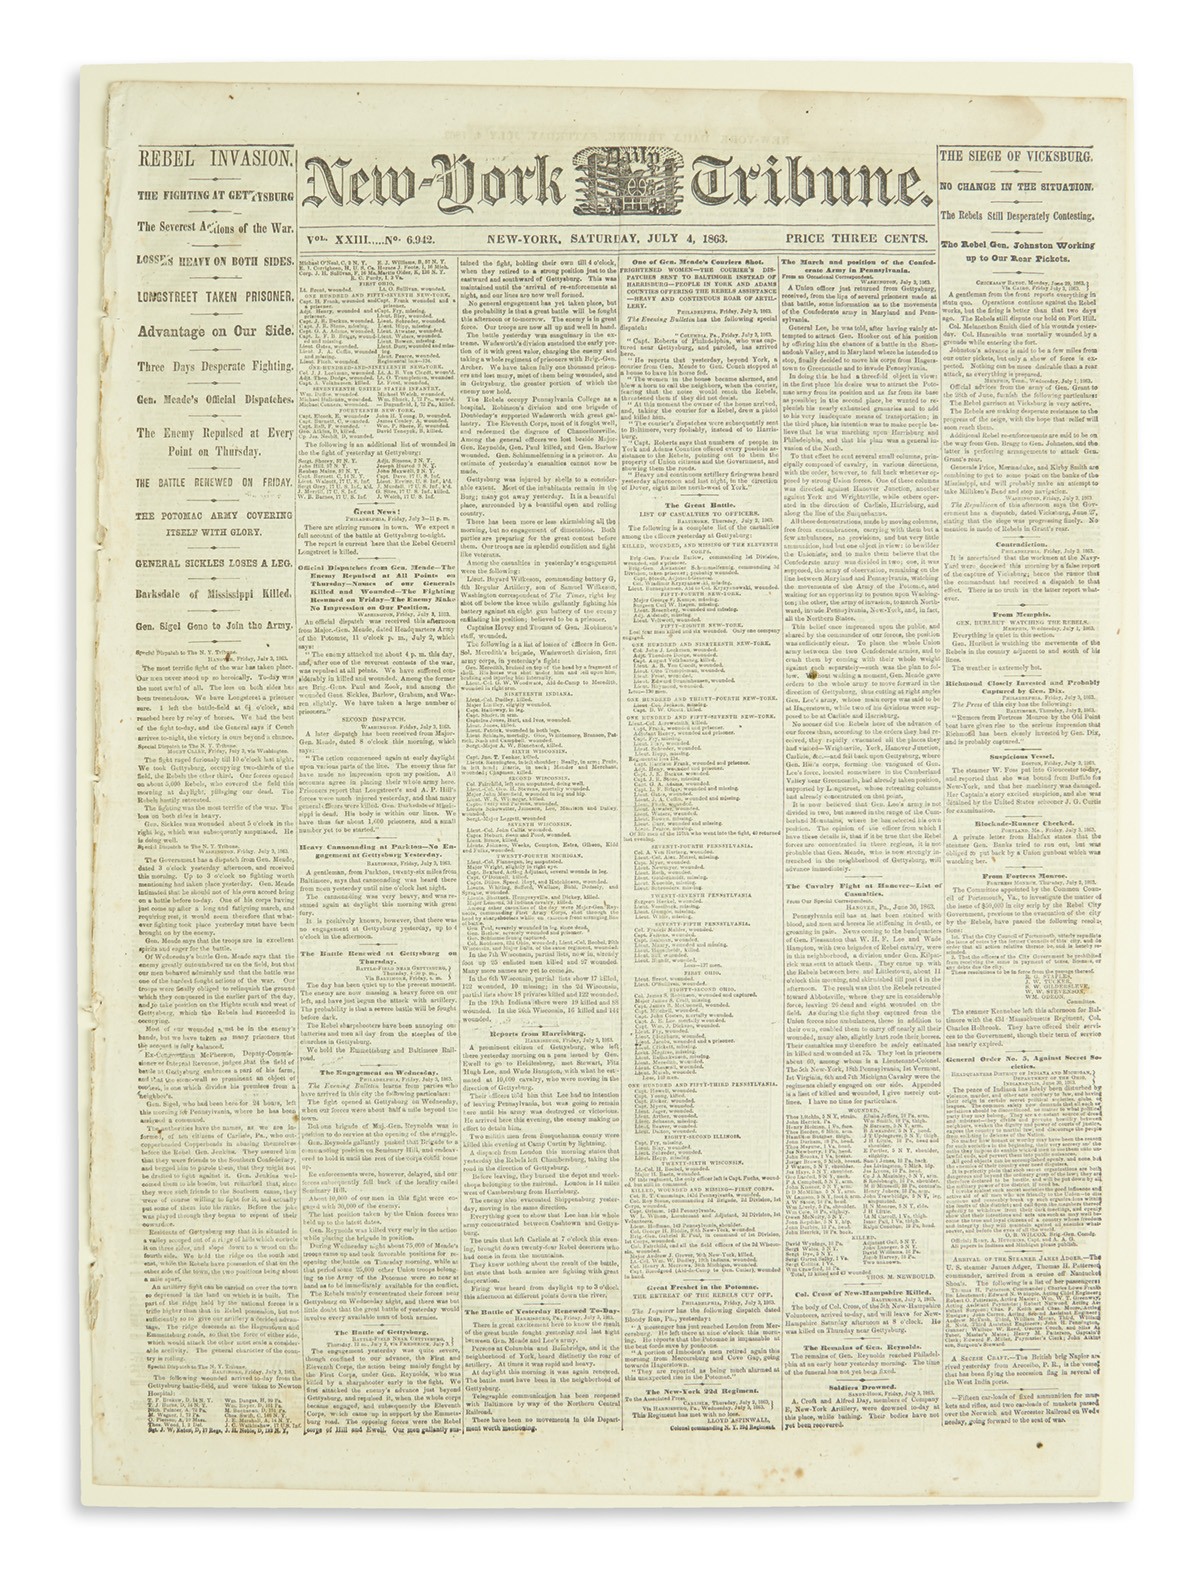 (CIVIL-WAR)-New-York-Tribune-account-of-the-Battle-of-Gettys